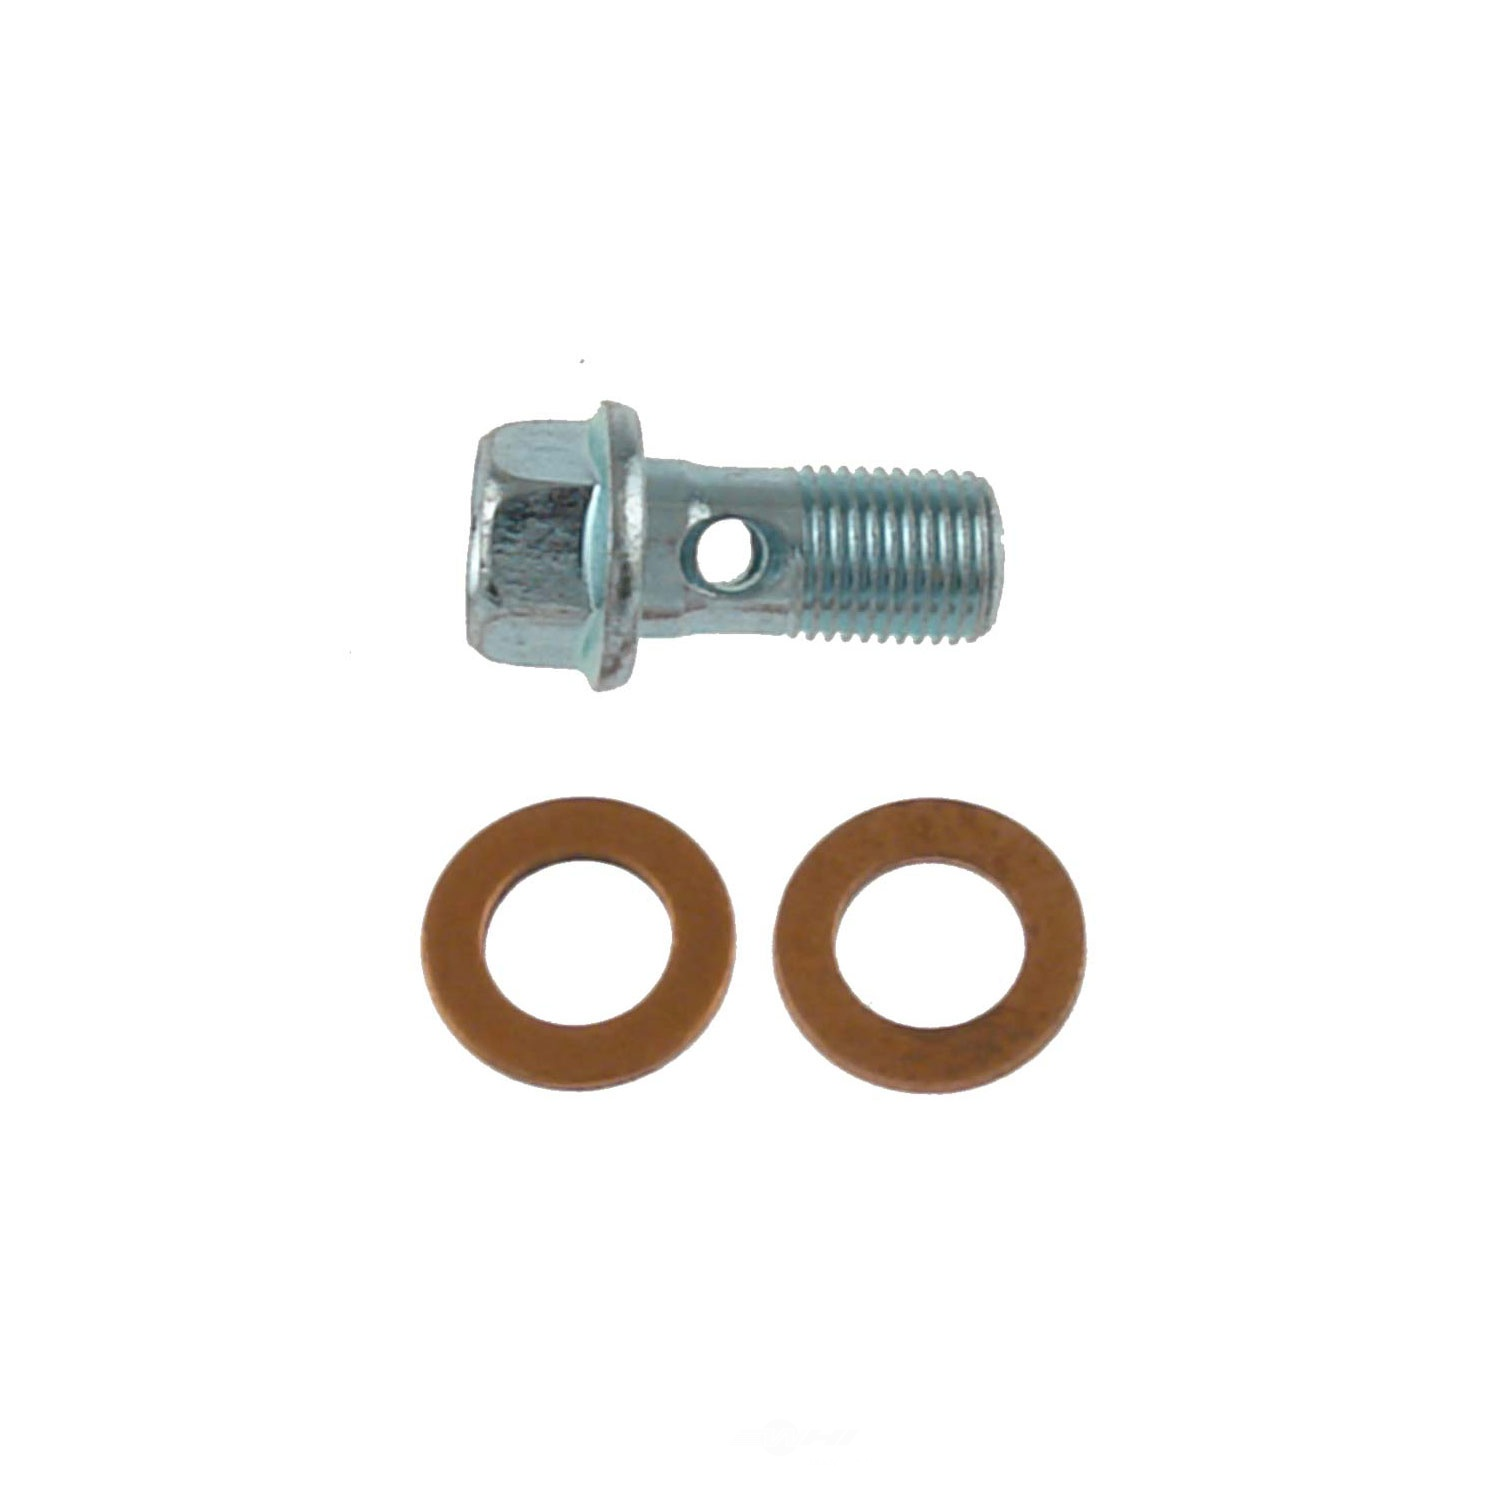 CARLSON QUALITY BRAKE PARTS - Brake Hydraulic Banjo Bolt (Front) - CRL H9471-2